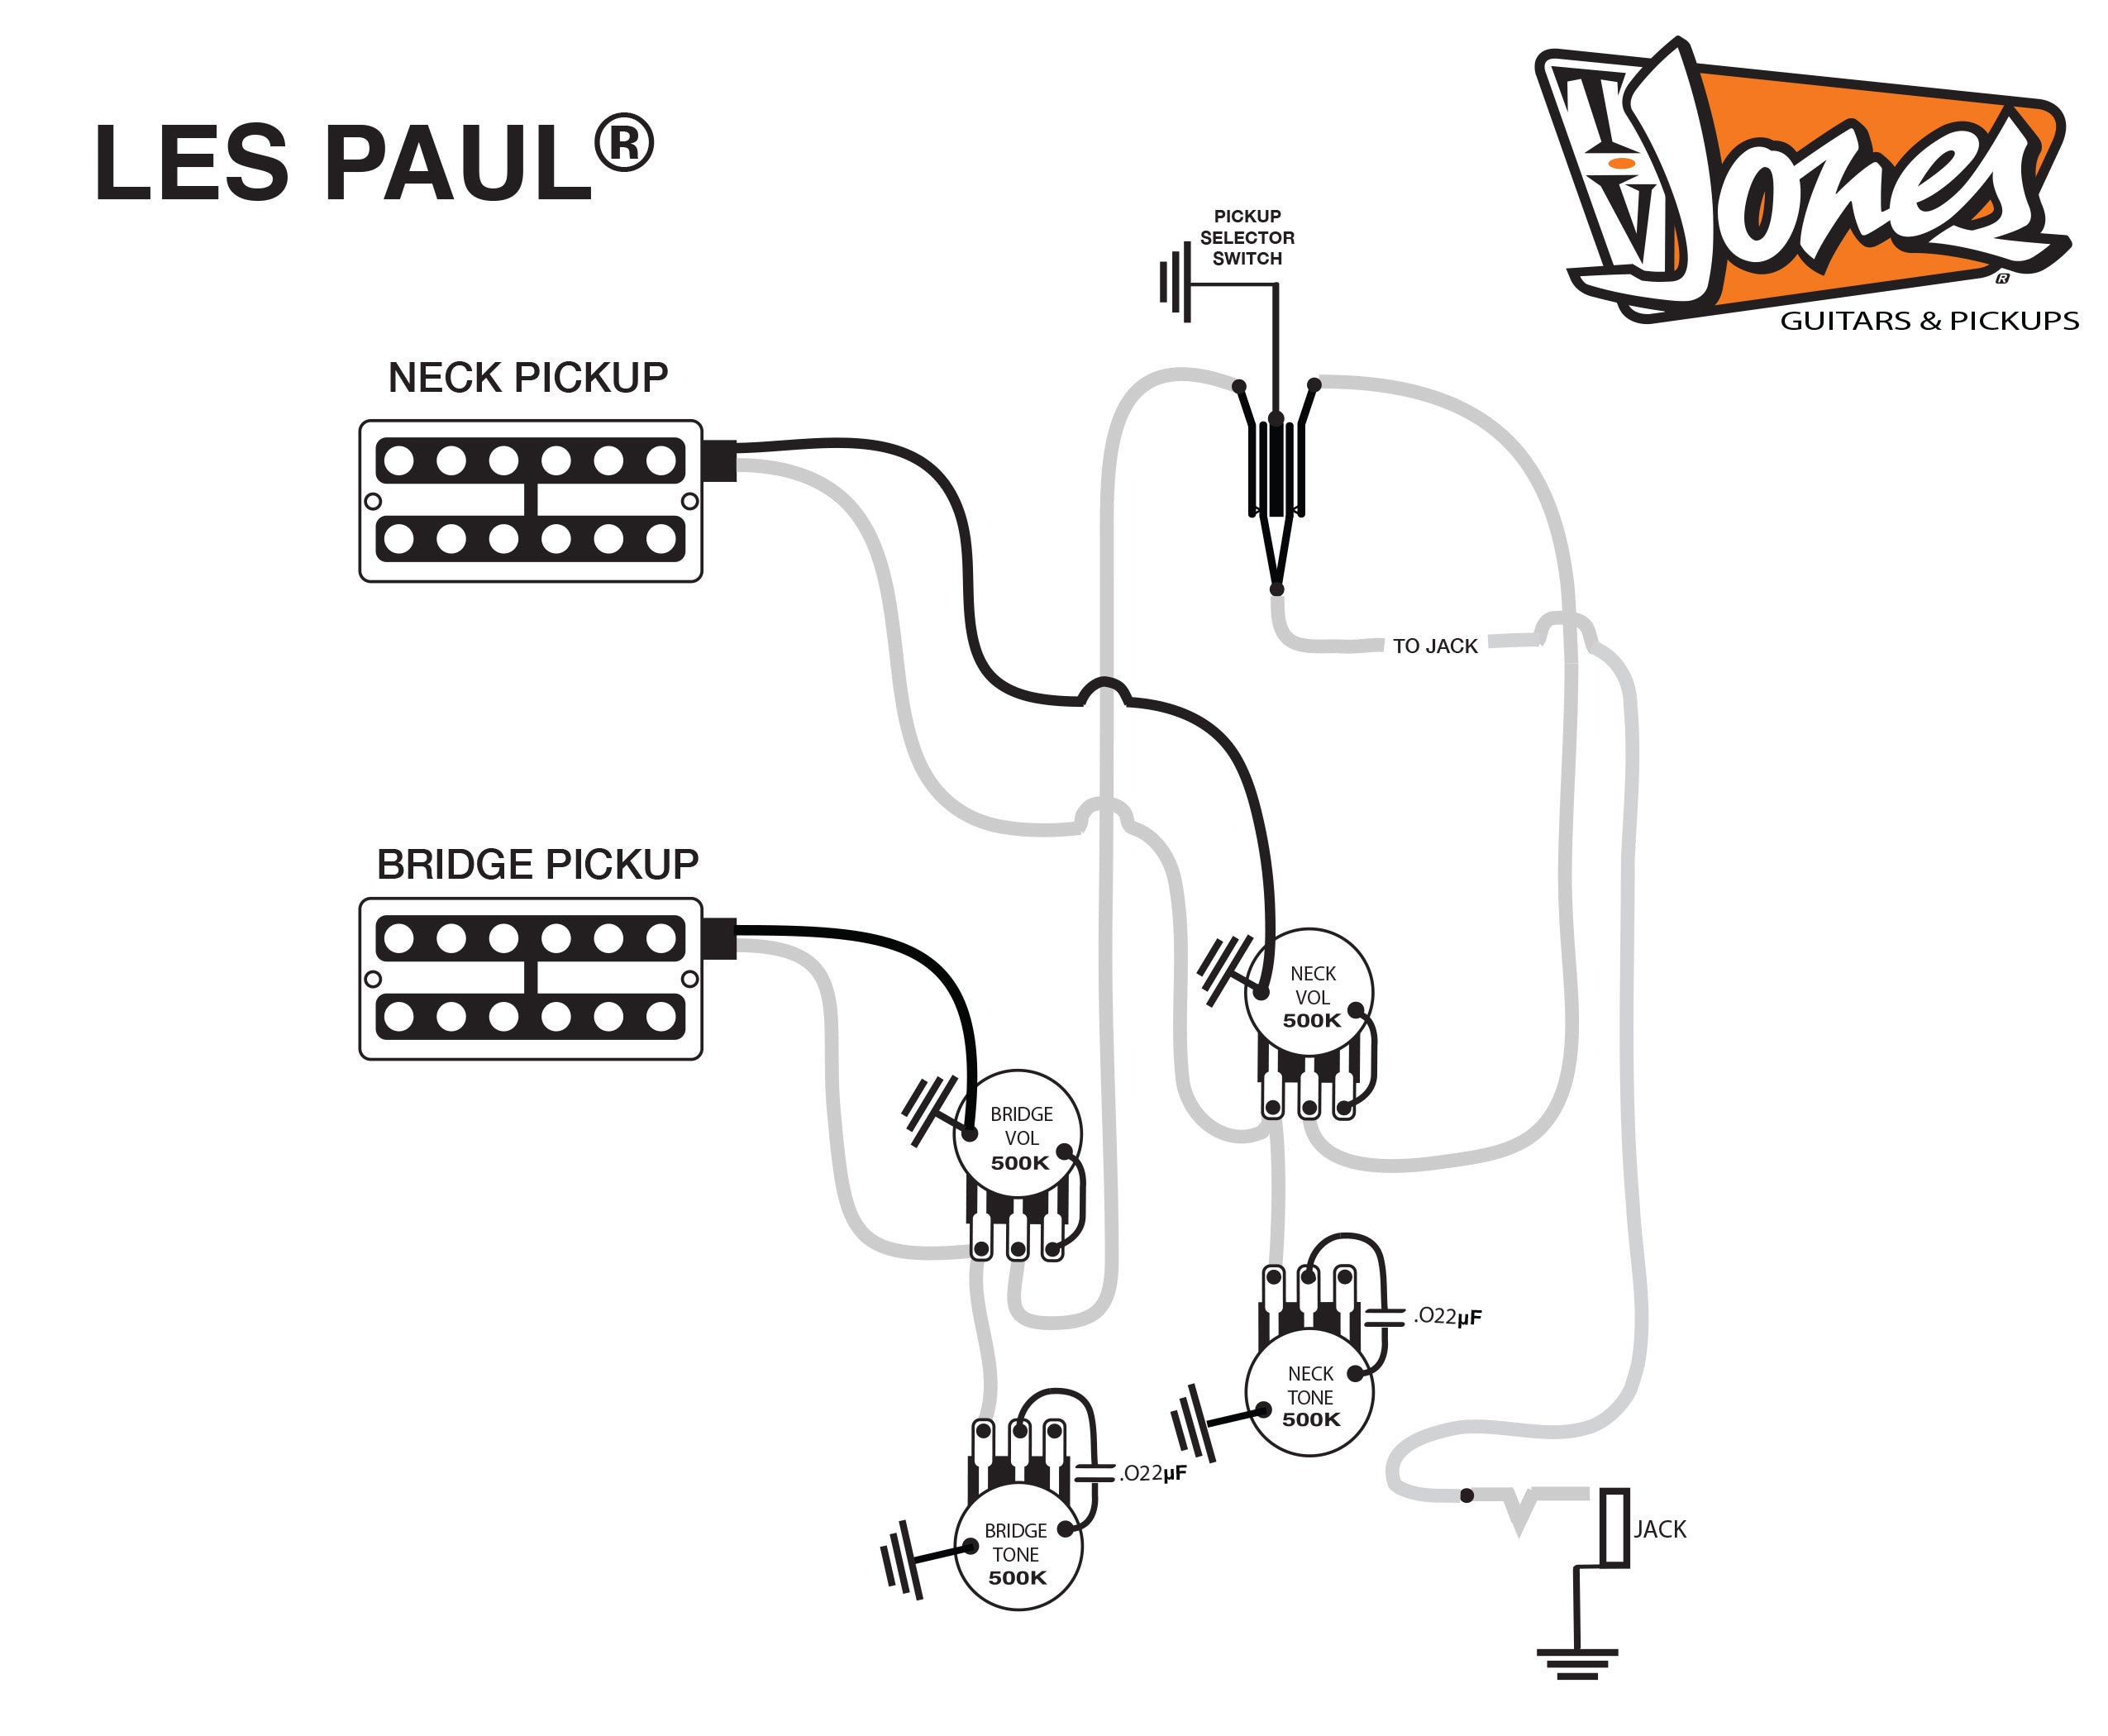 Gretsch Pickup Wiring Diagram Simple Wiring Diagram